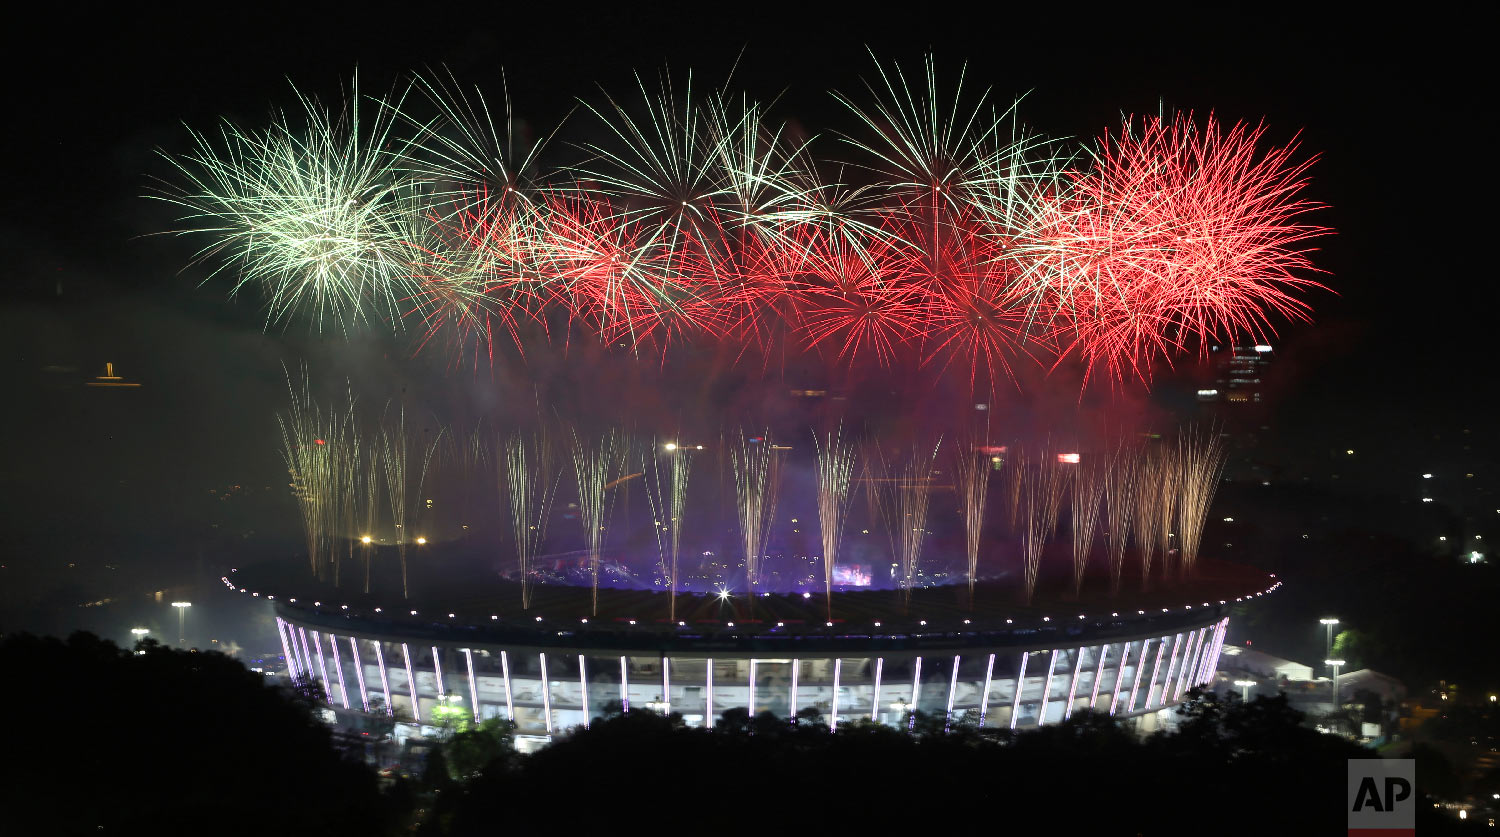 Fireworks explode over the Gelora Bung Karno Stadium during the closing ceremony for the 18th Asian Games at in Jakarta, Indonesia, Sunday, Sept. 2, 2018. (AP Photo/Achmad Ibrahim)